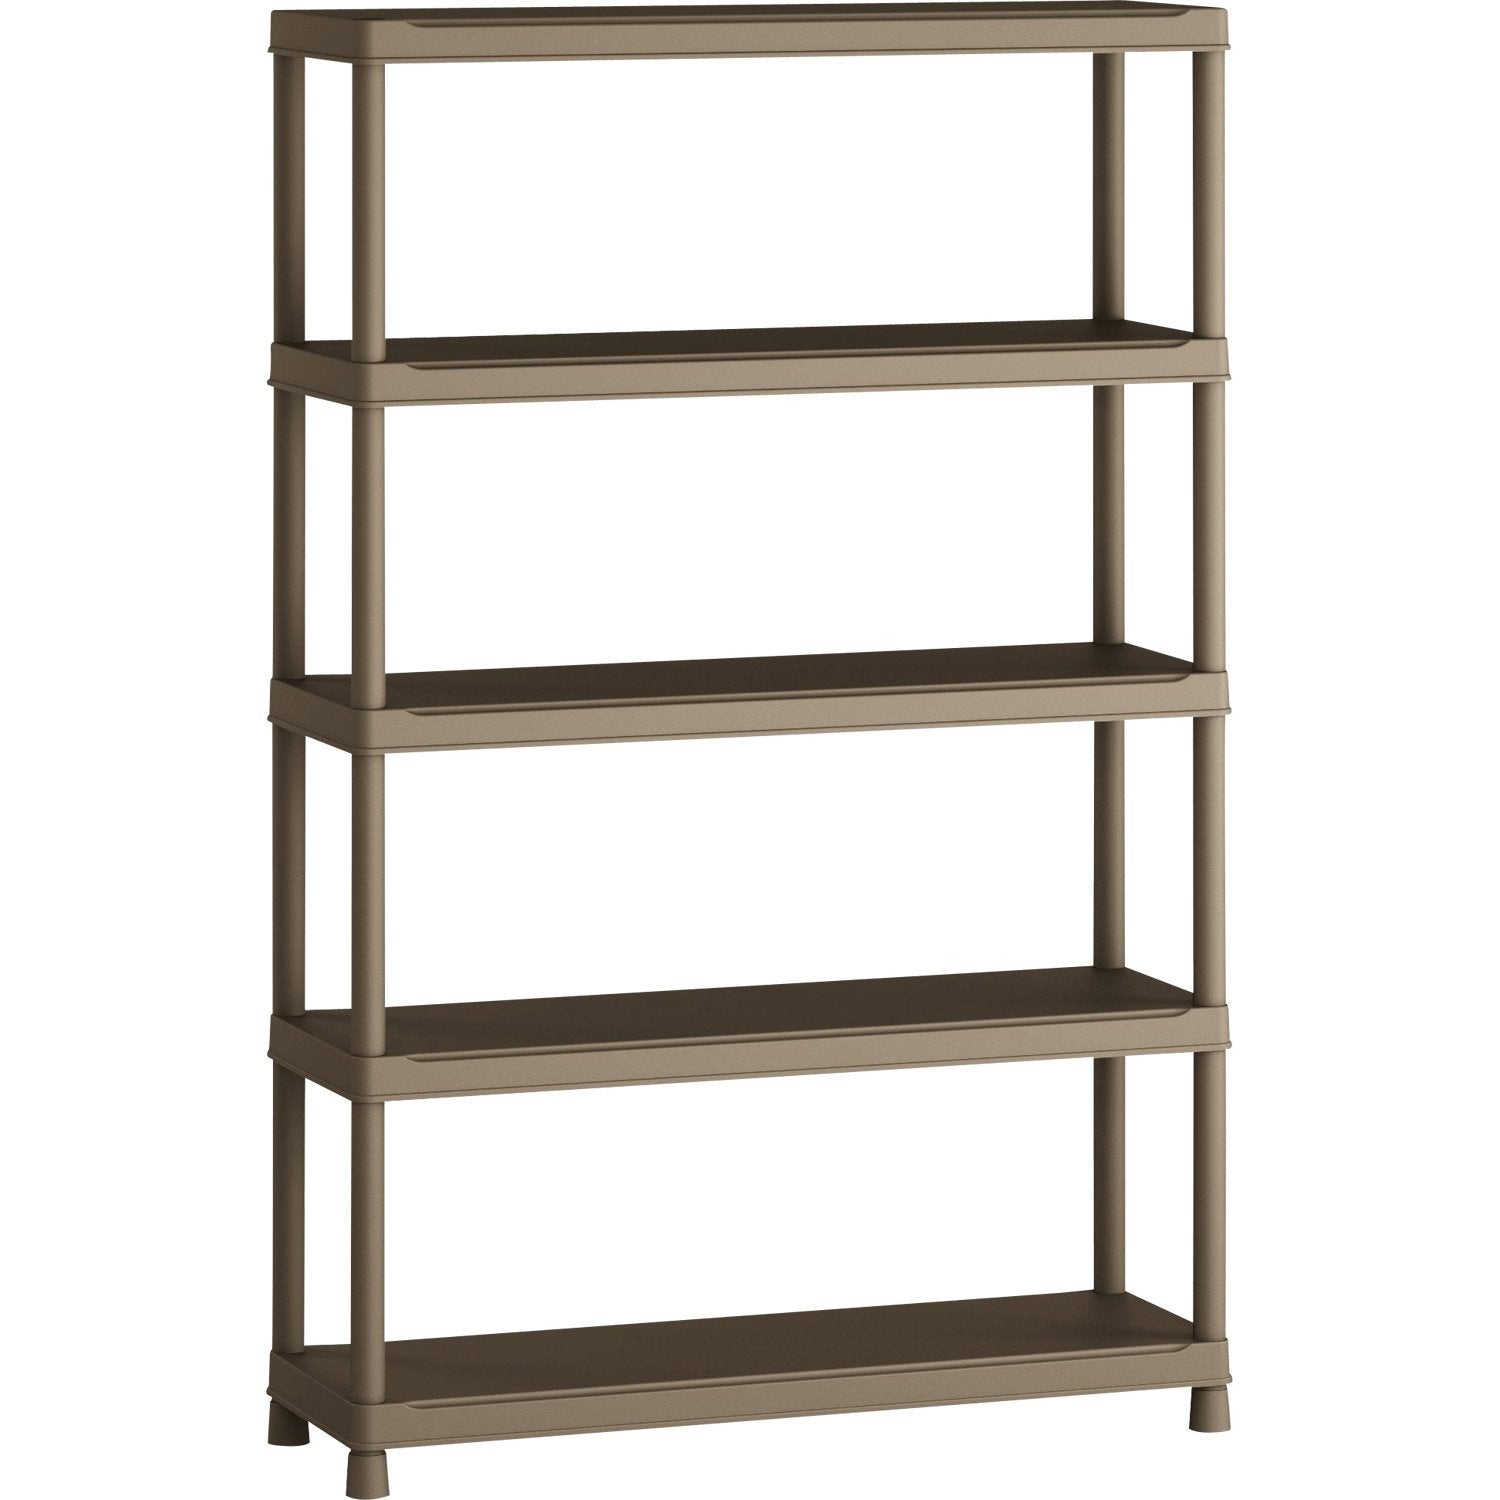 Etag re r sine spaceo 5 tablettes terre l120xh181xp40 cm - Etagere 30 cm ...